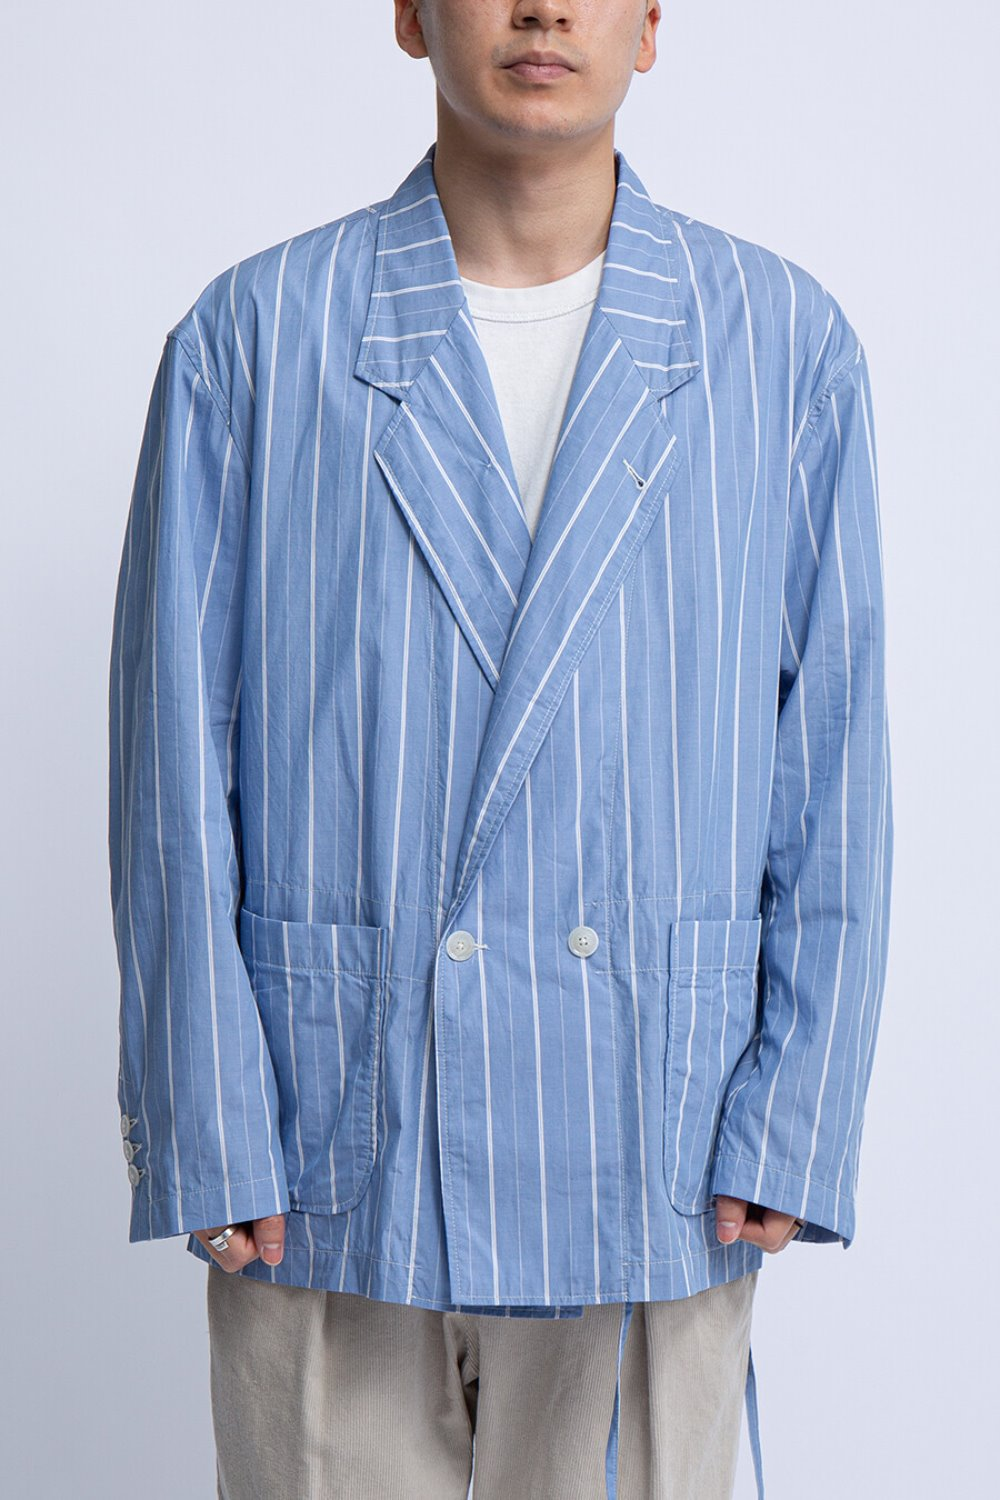 EZ JACKET BLUE/WHITE COTTON STRIPE